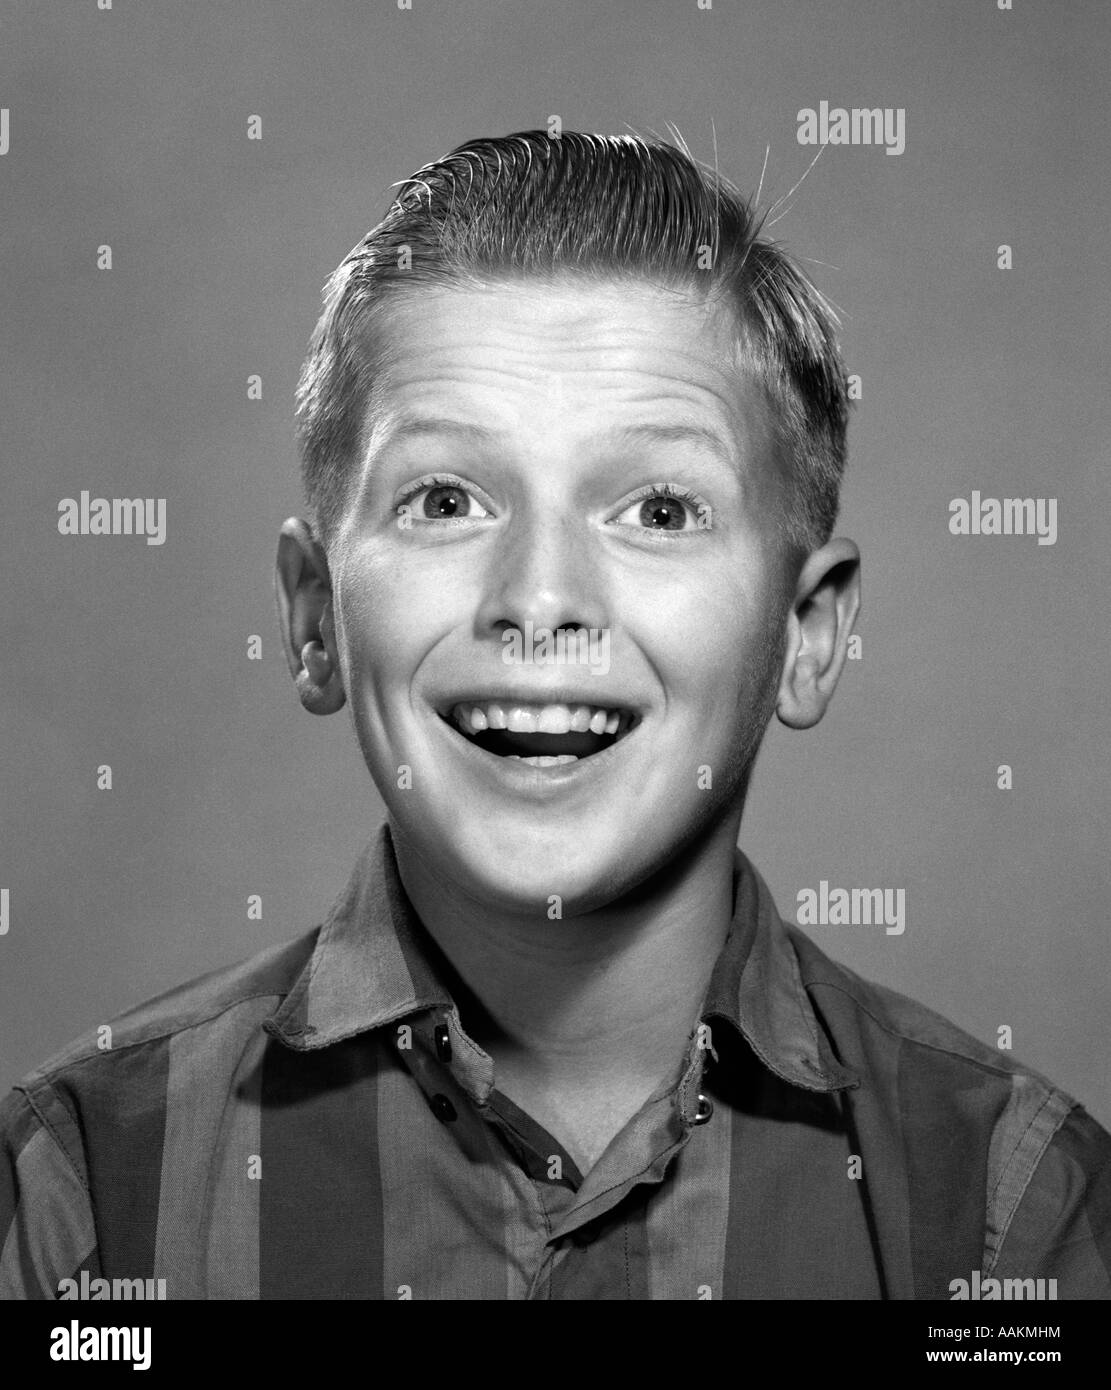 1960s PORTRAIT SMILING WIDE-EYED HAPPY SURPRISED TEENAGE BOY LOOKING AT CAMERA - Stock Image